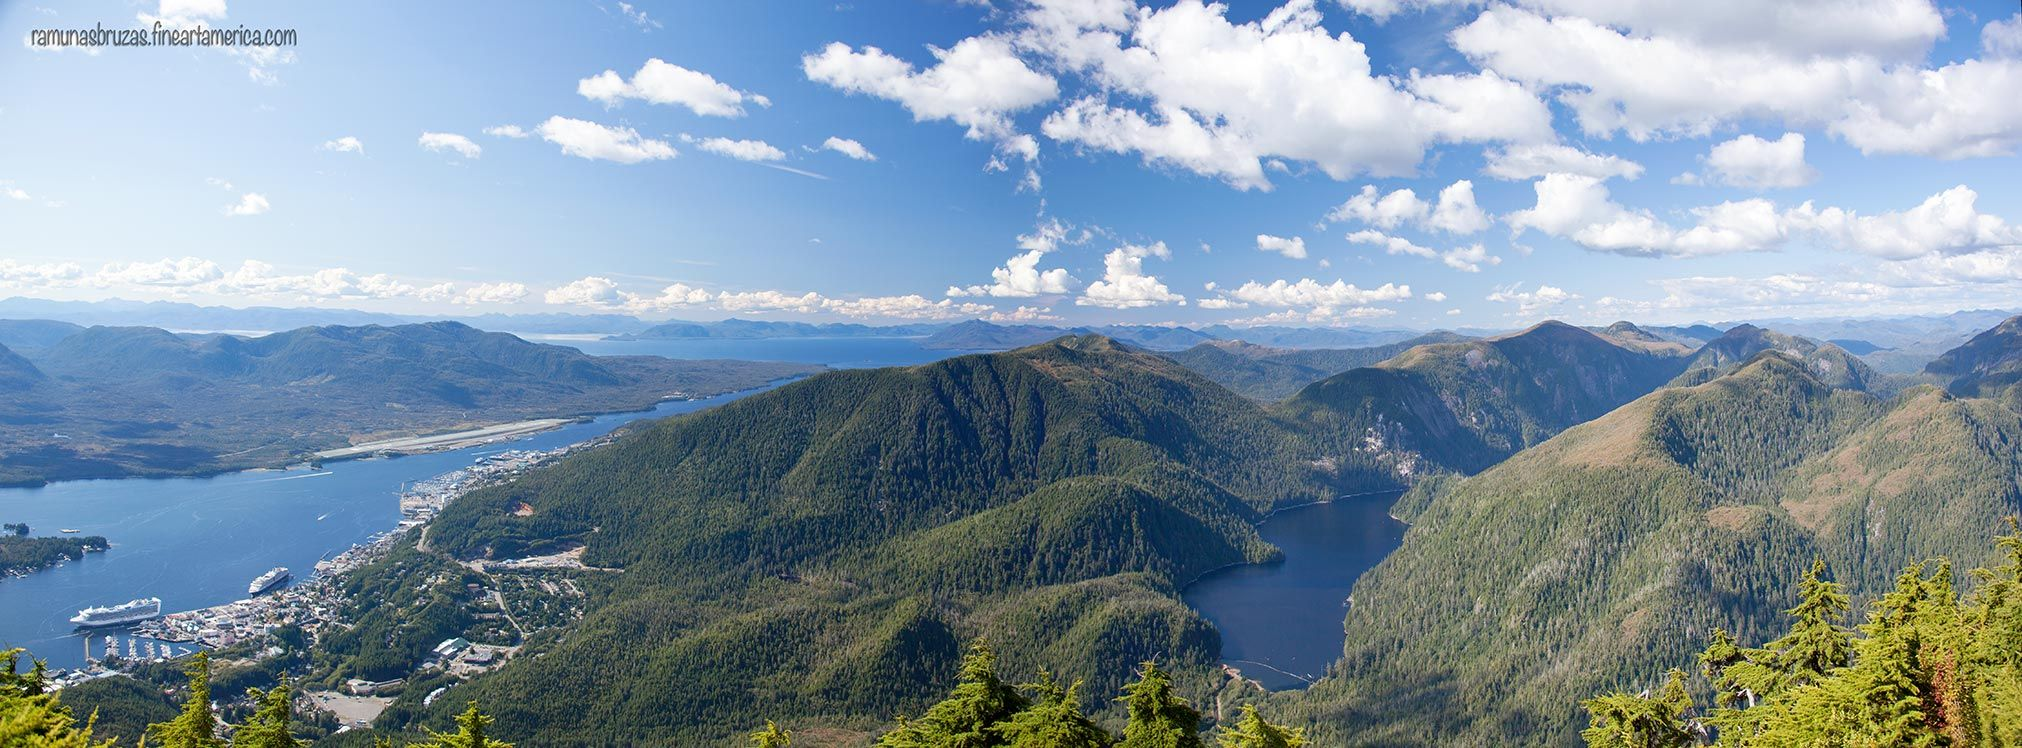 The panoramic view from the top of Deer Mount with Ketchikan town surrounded by mountains (Alaska). 2015.09.03